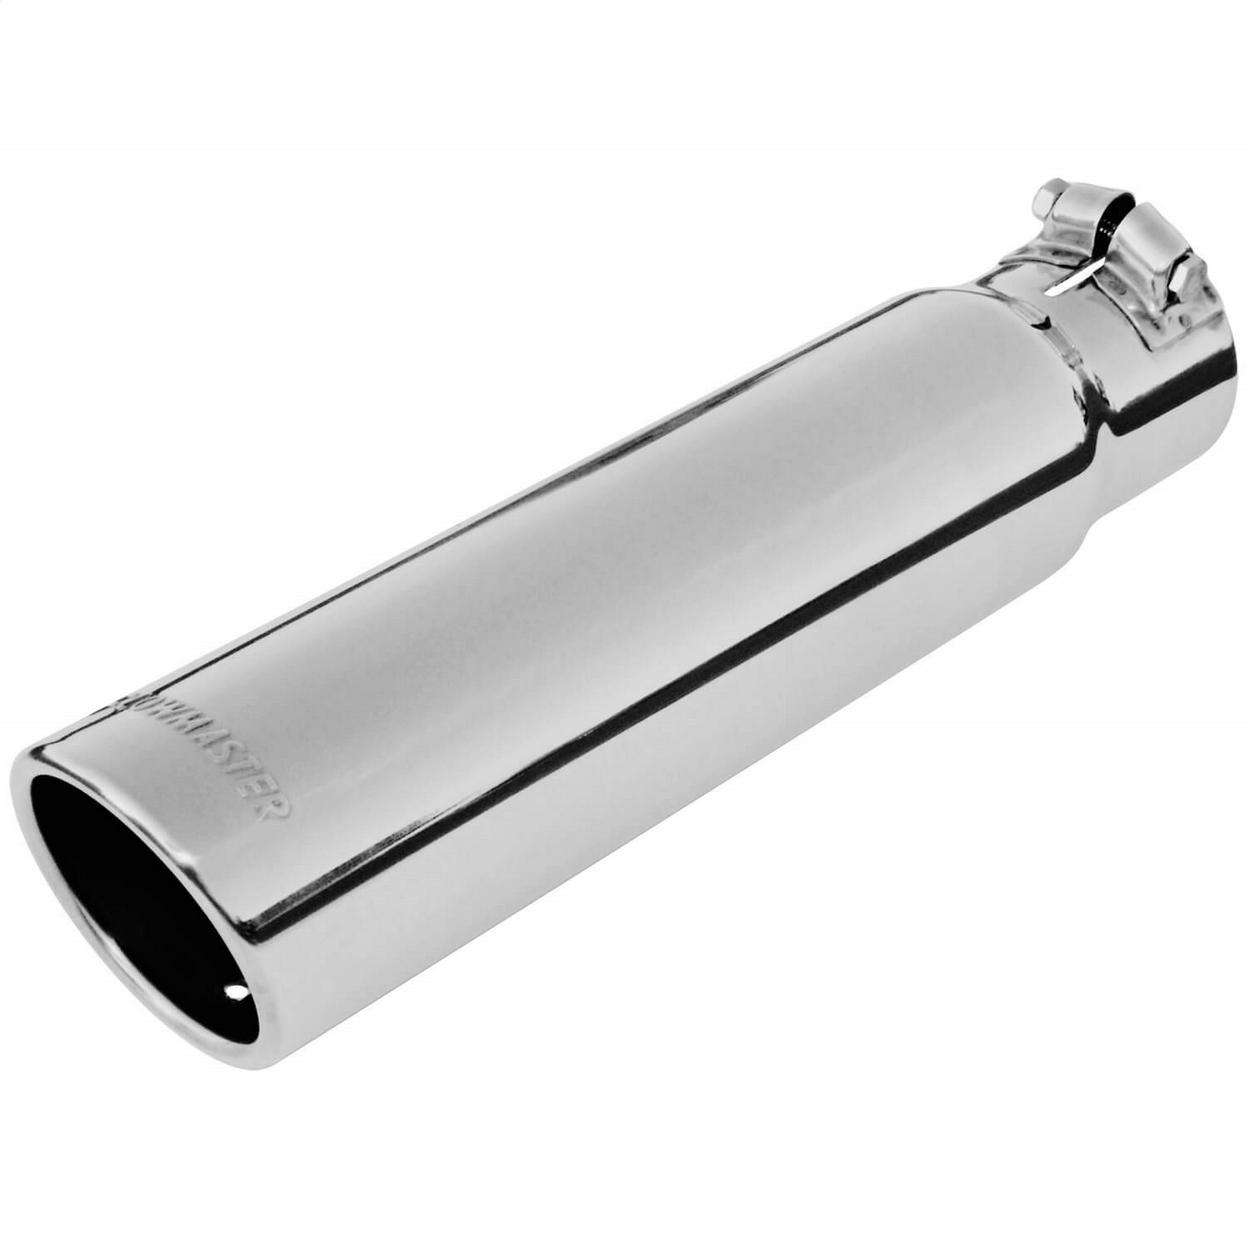 Exhaust Tip - 3.00 in. Rolled Angle Polished SS Fits 2.50 in. Tubing - clamp on